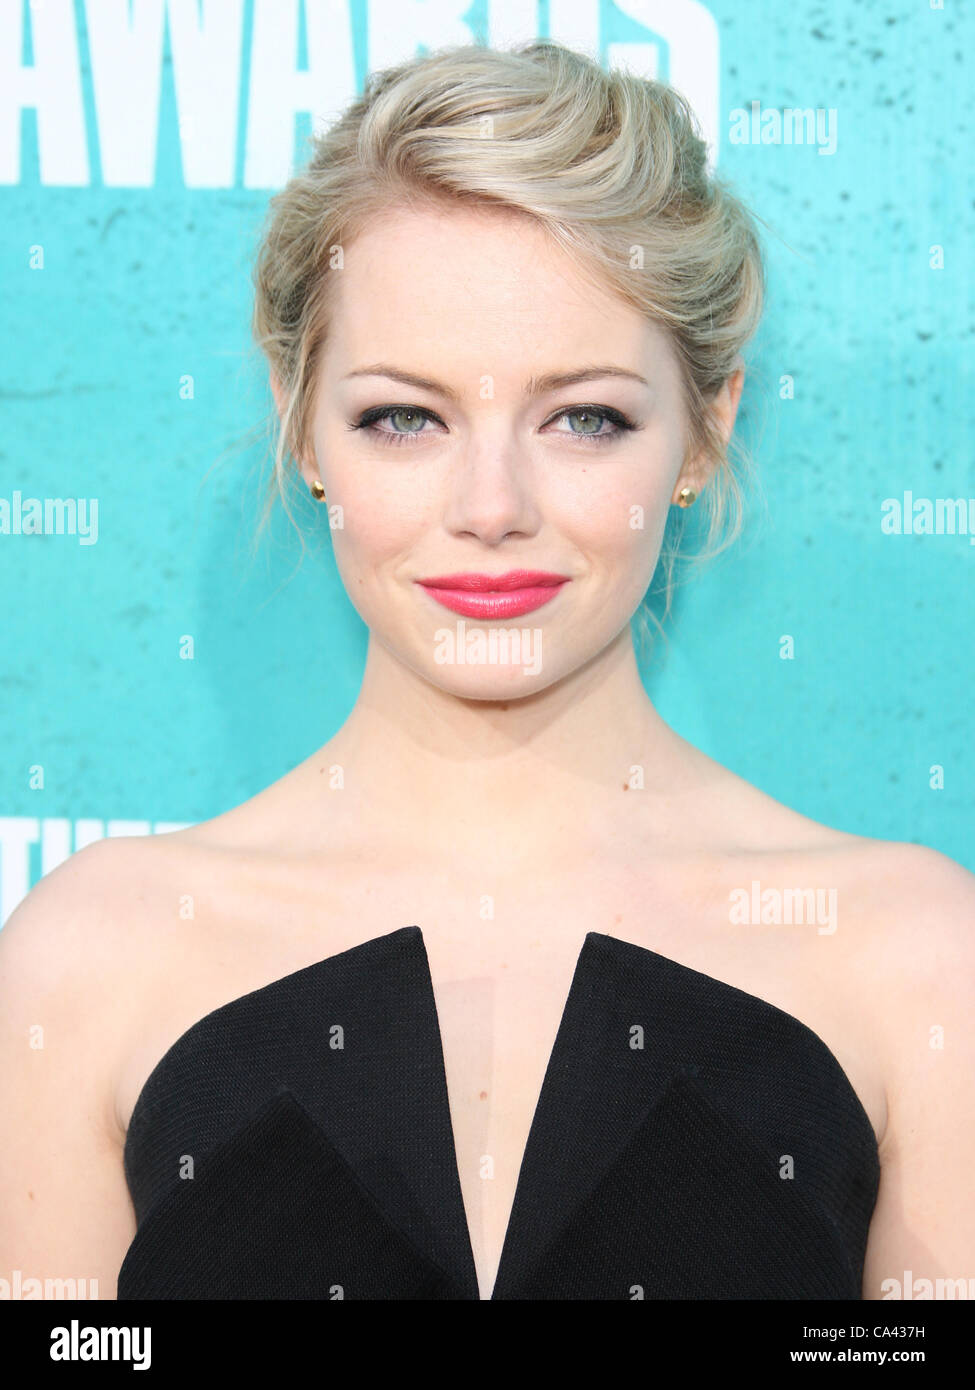 EMMA STONE LE MTV Movie Awards 2012. Arrivants LOS ANGELES CALIFORNIA USA 03 Juin 2012 Photo Stock